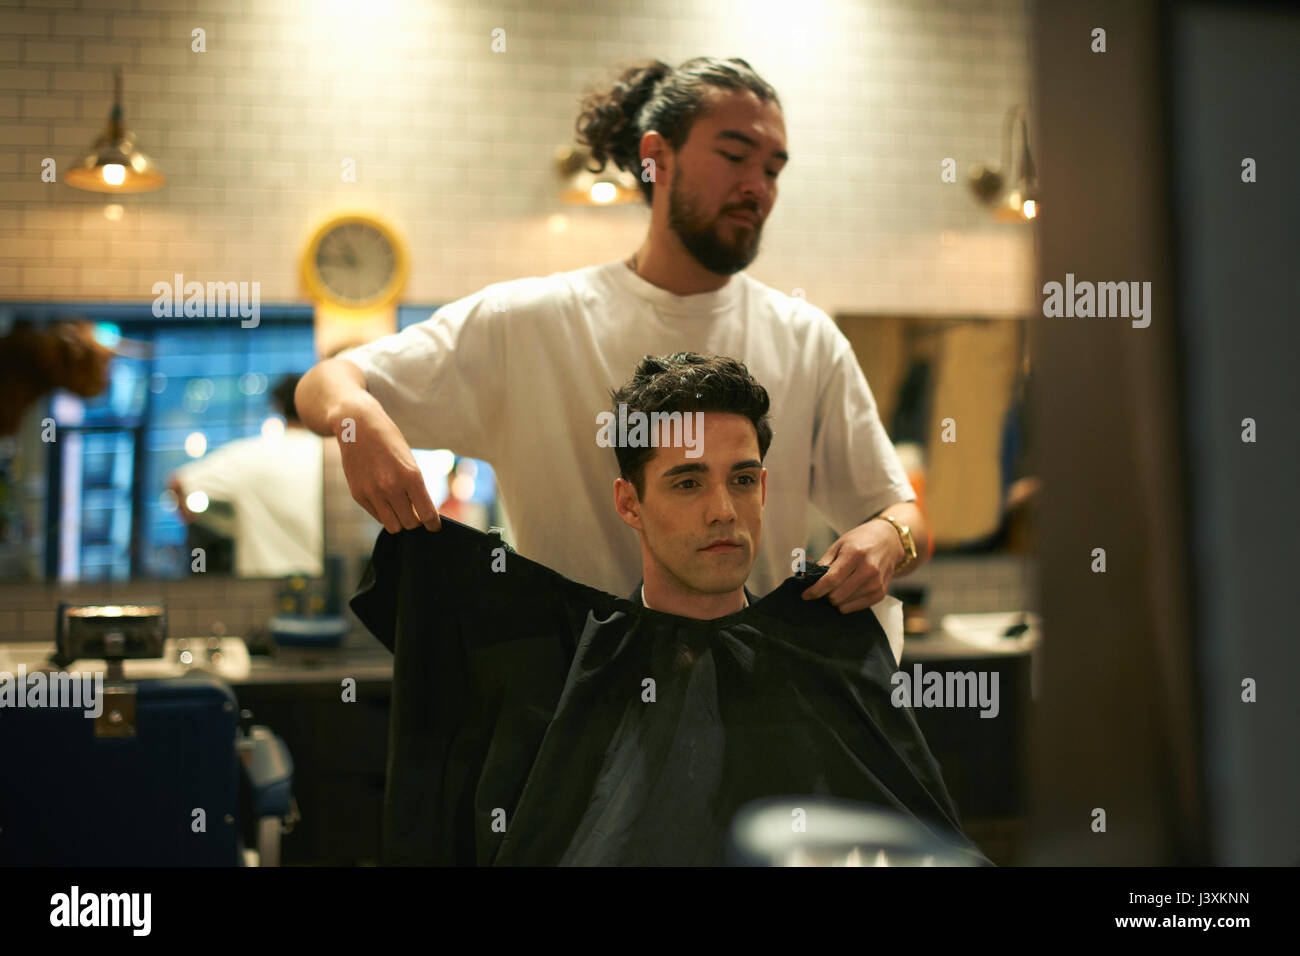 Barber putting gown onto male customer in barber shop - Stock Image